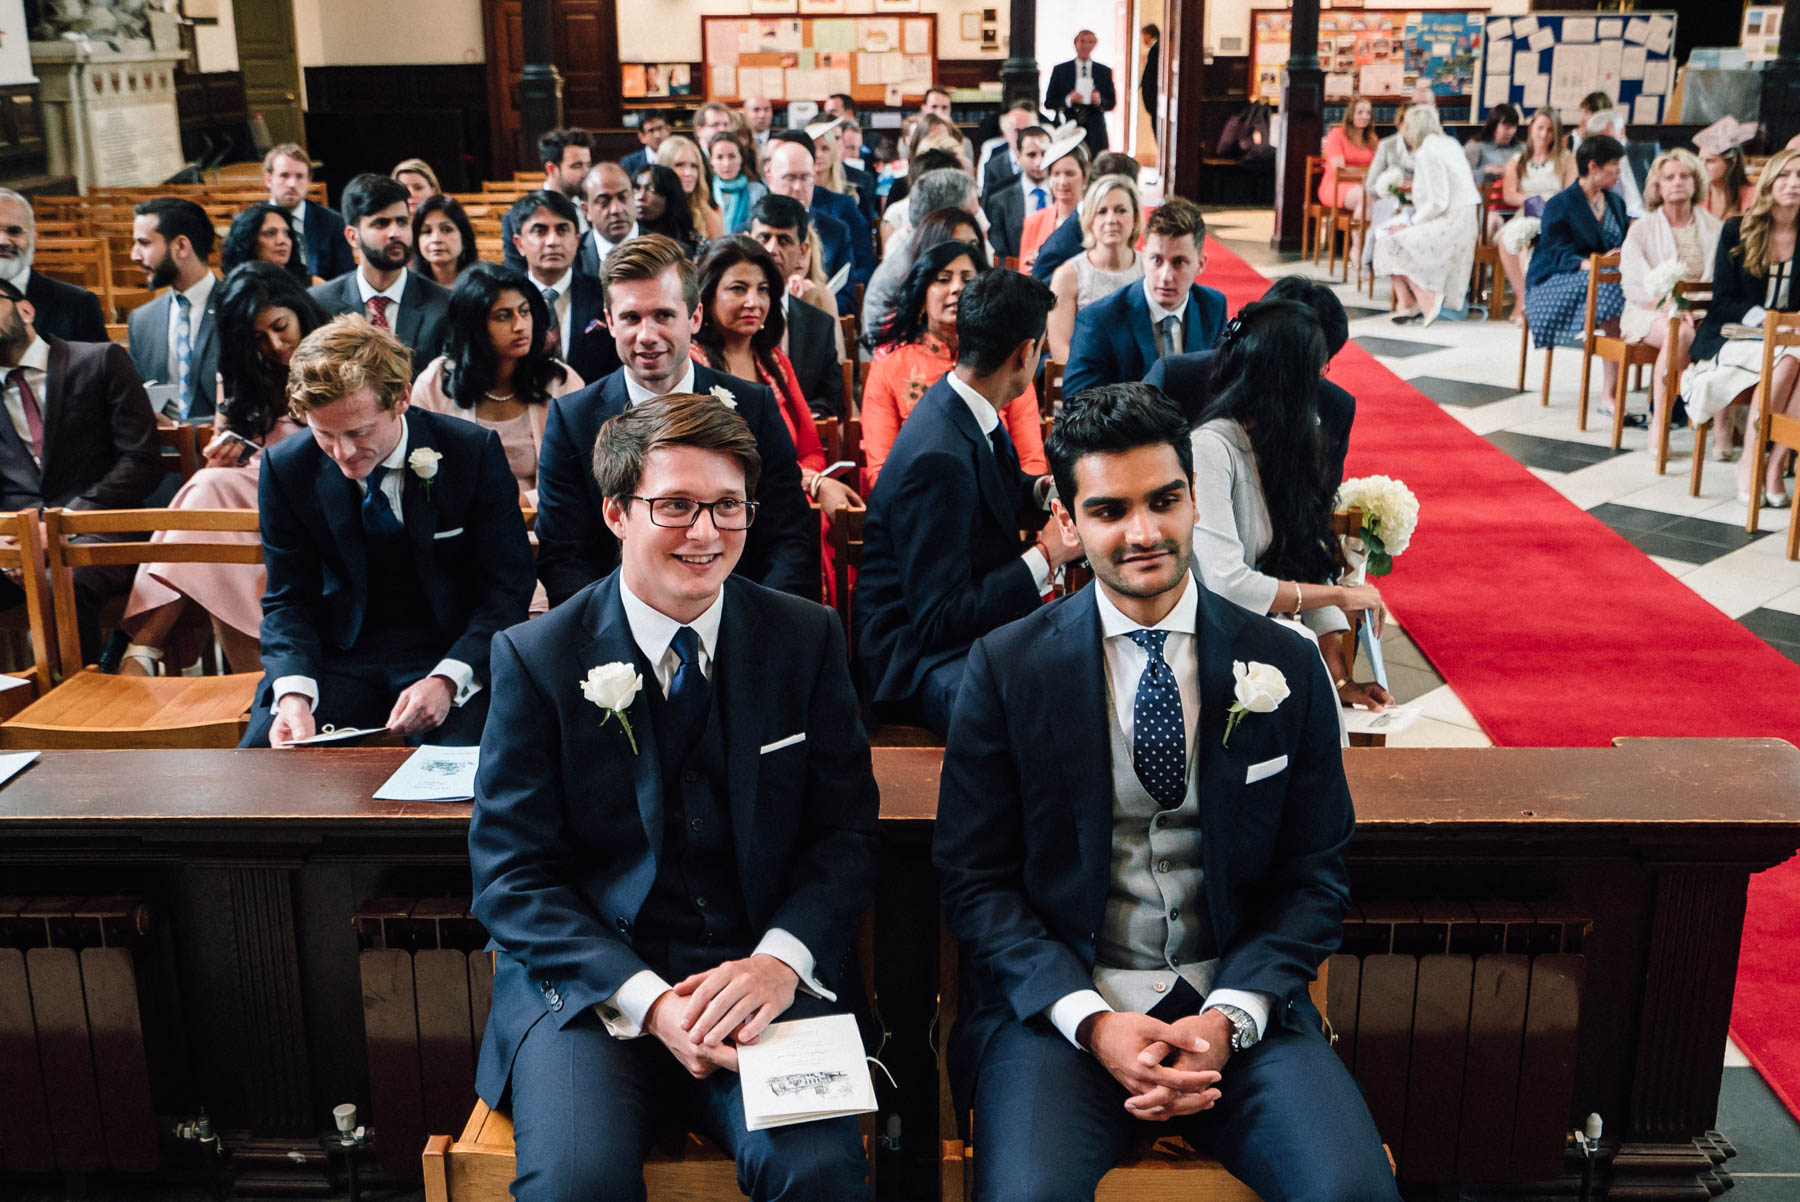 Anish and his best man wait patiently at holy trinity church on Guildford high street